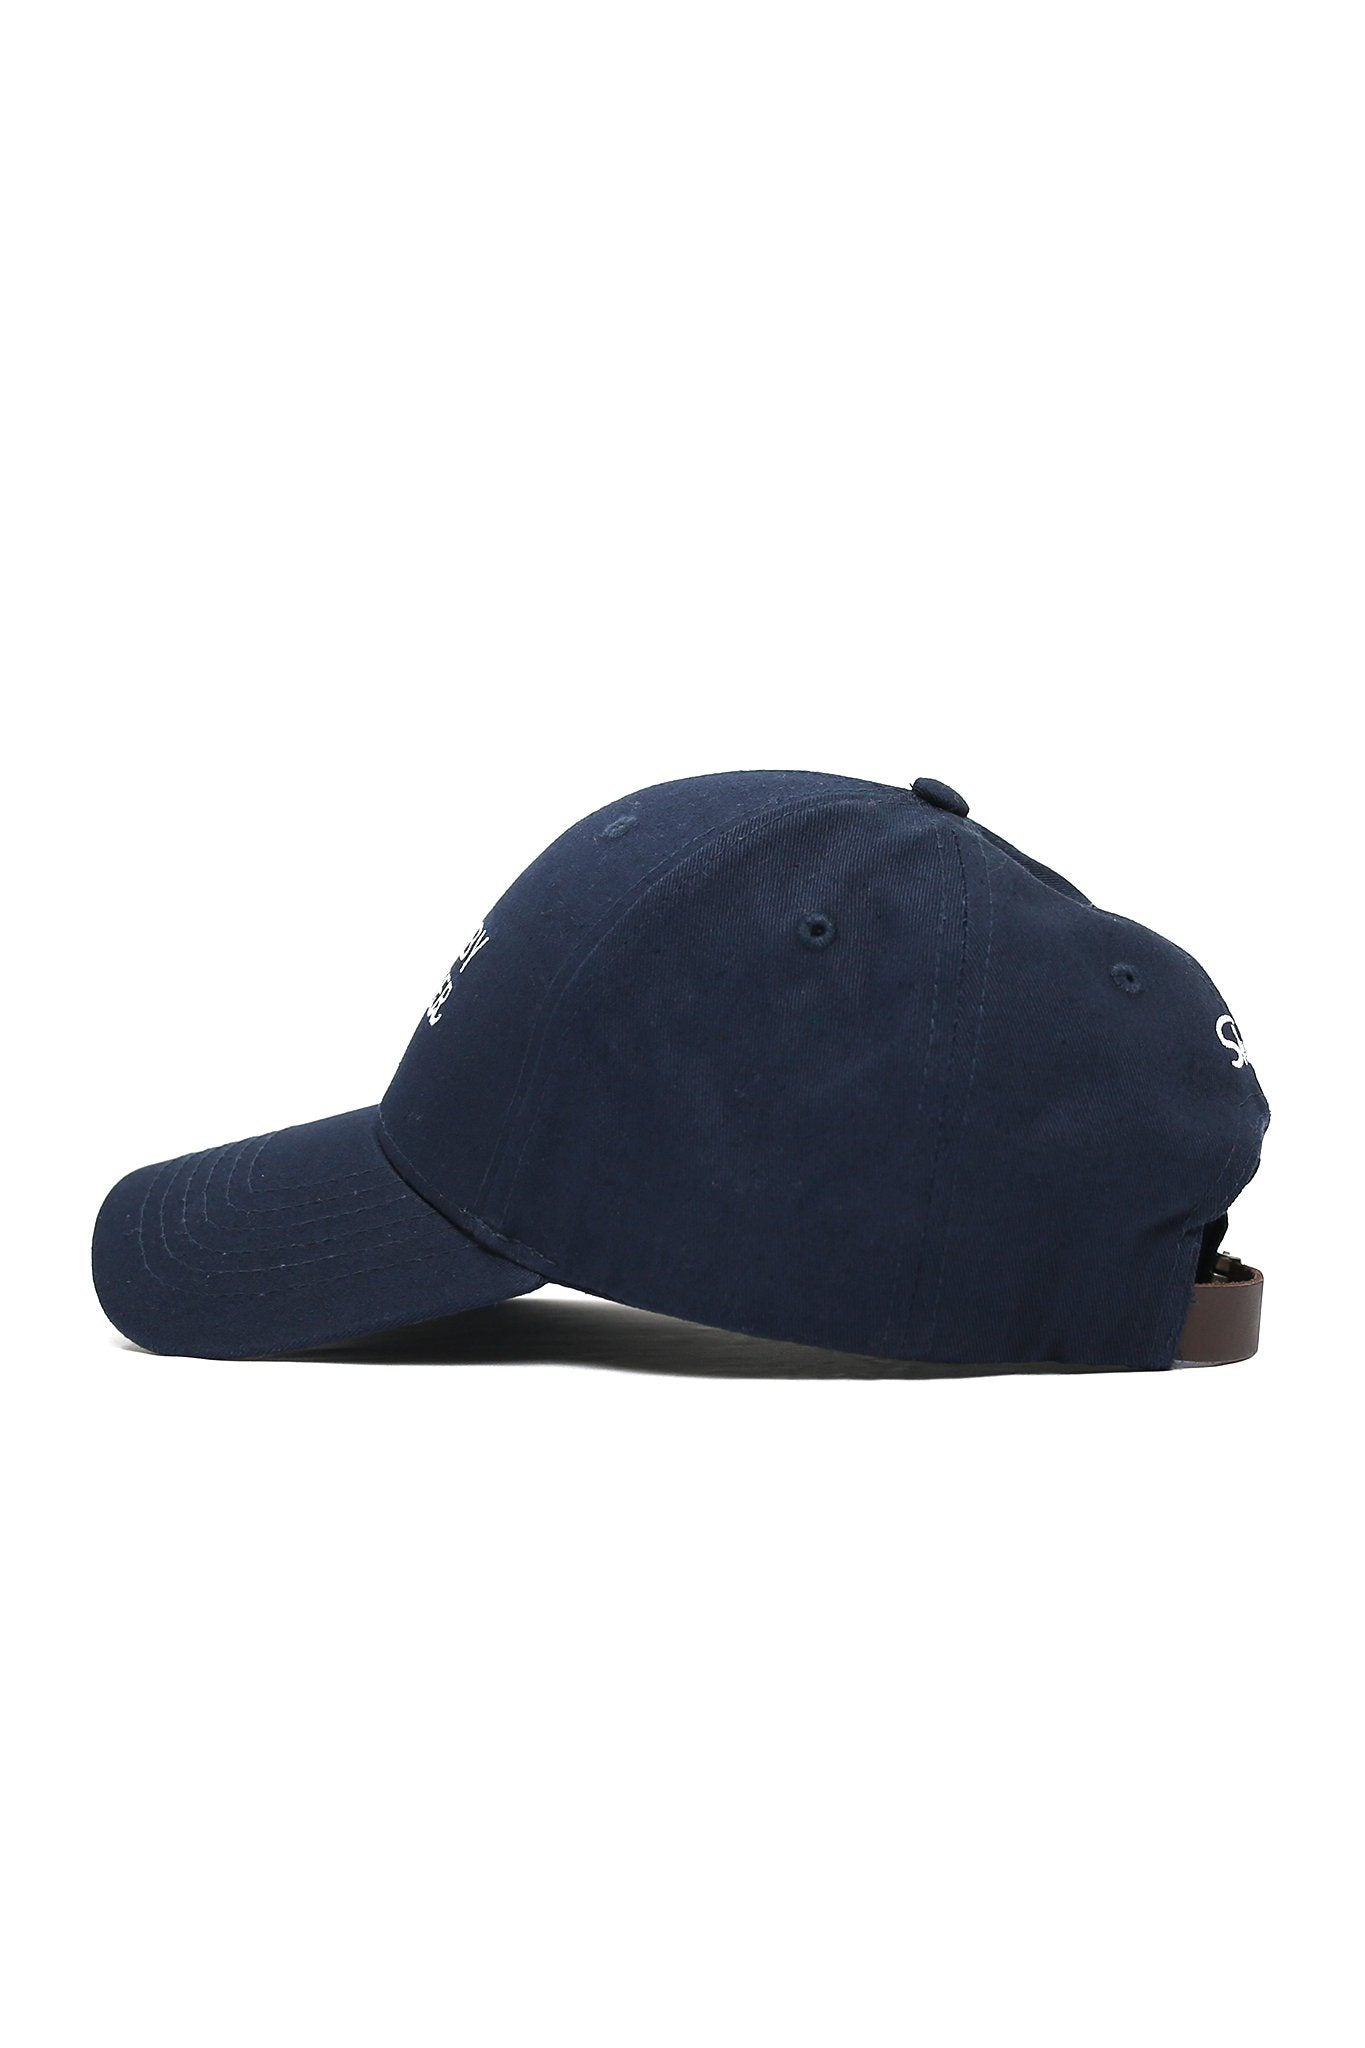 Born By Water Waves Cap - Navy - Shore